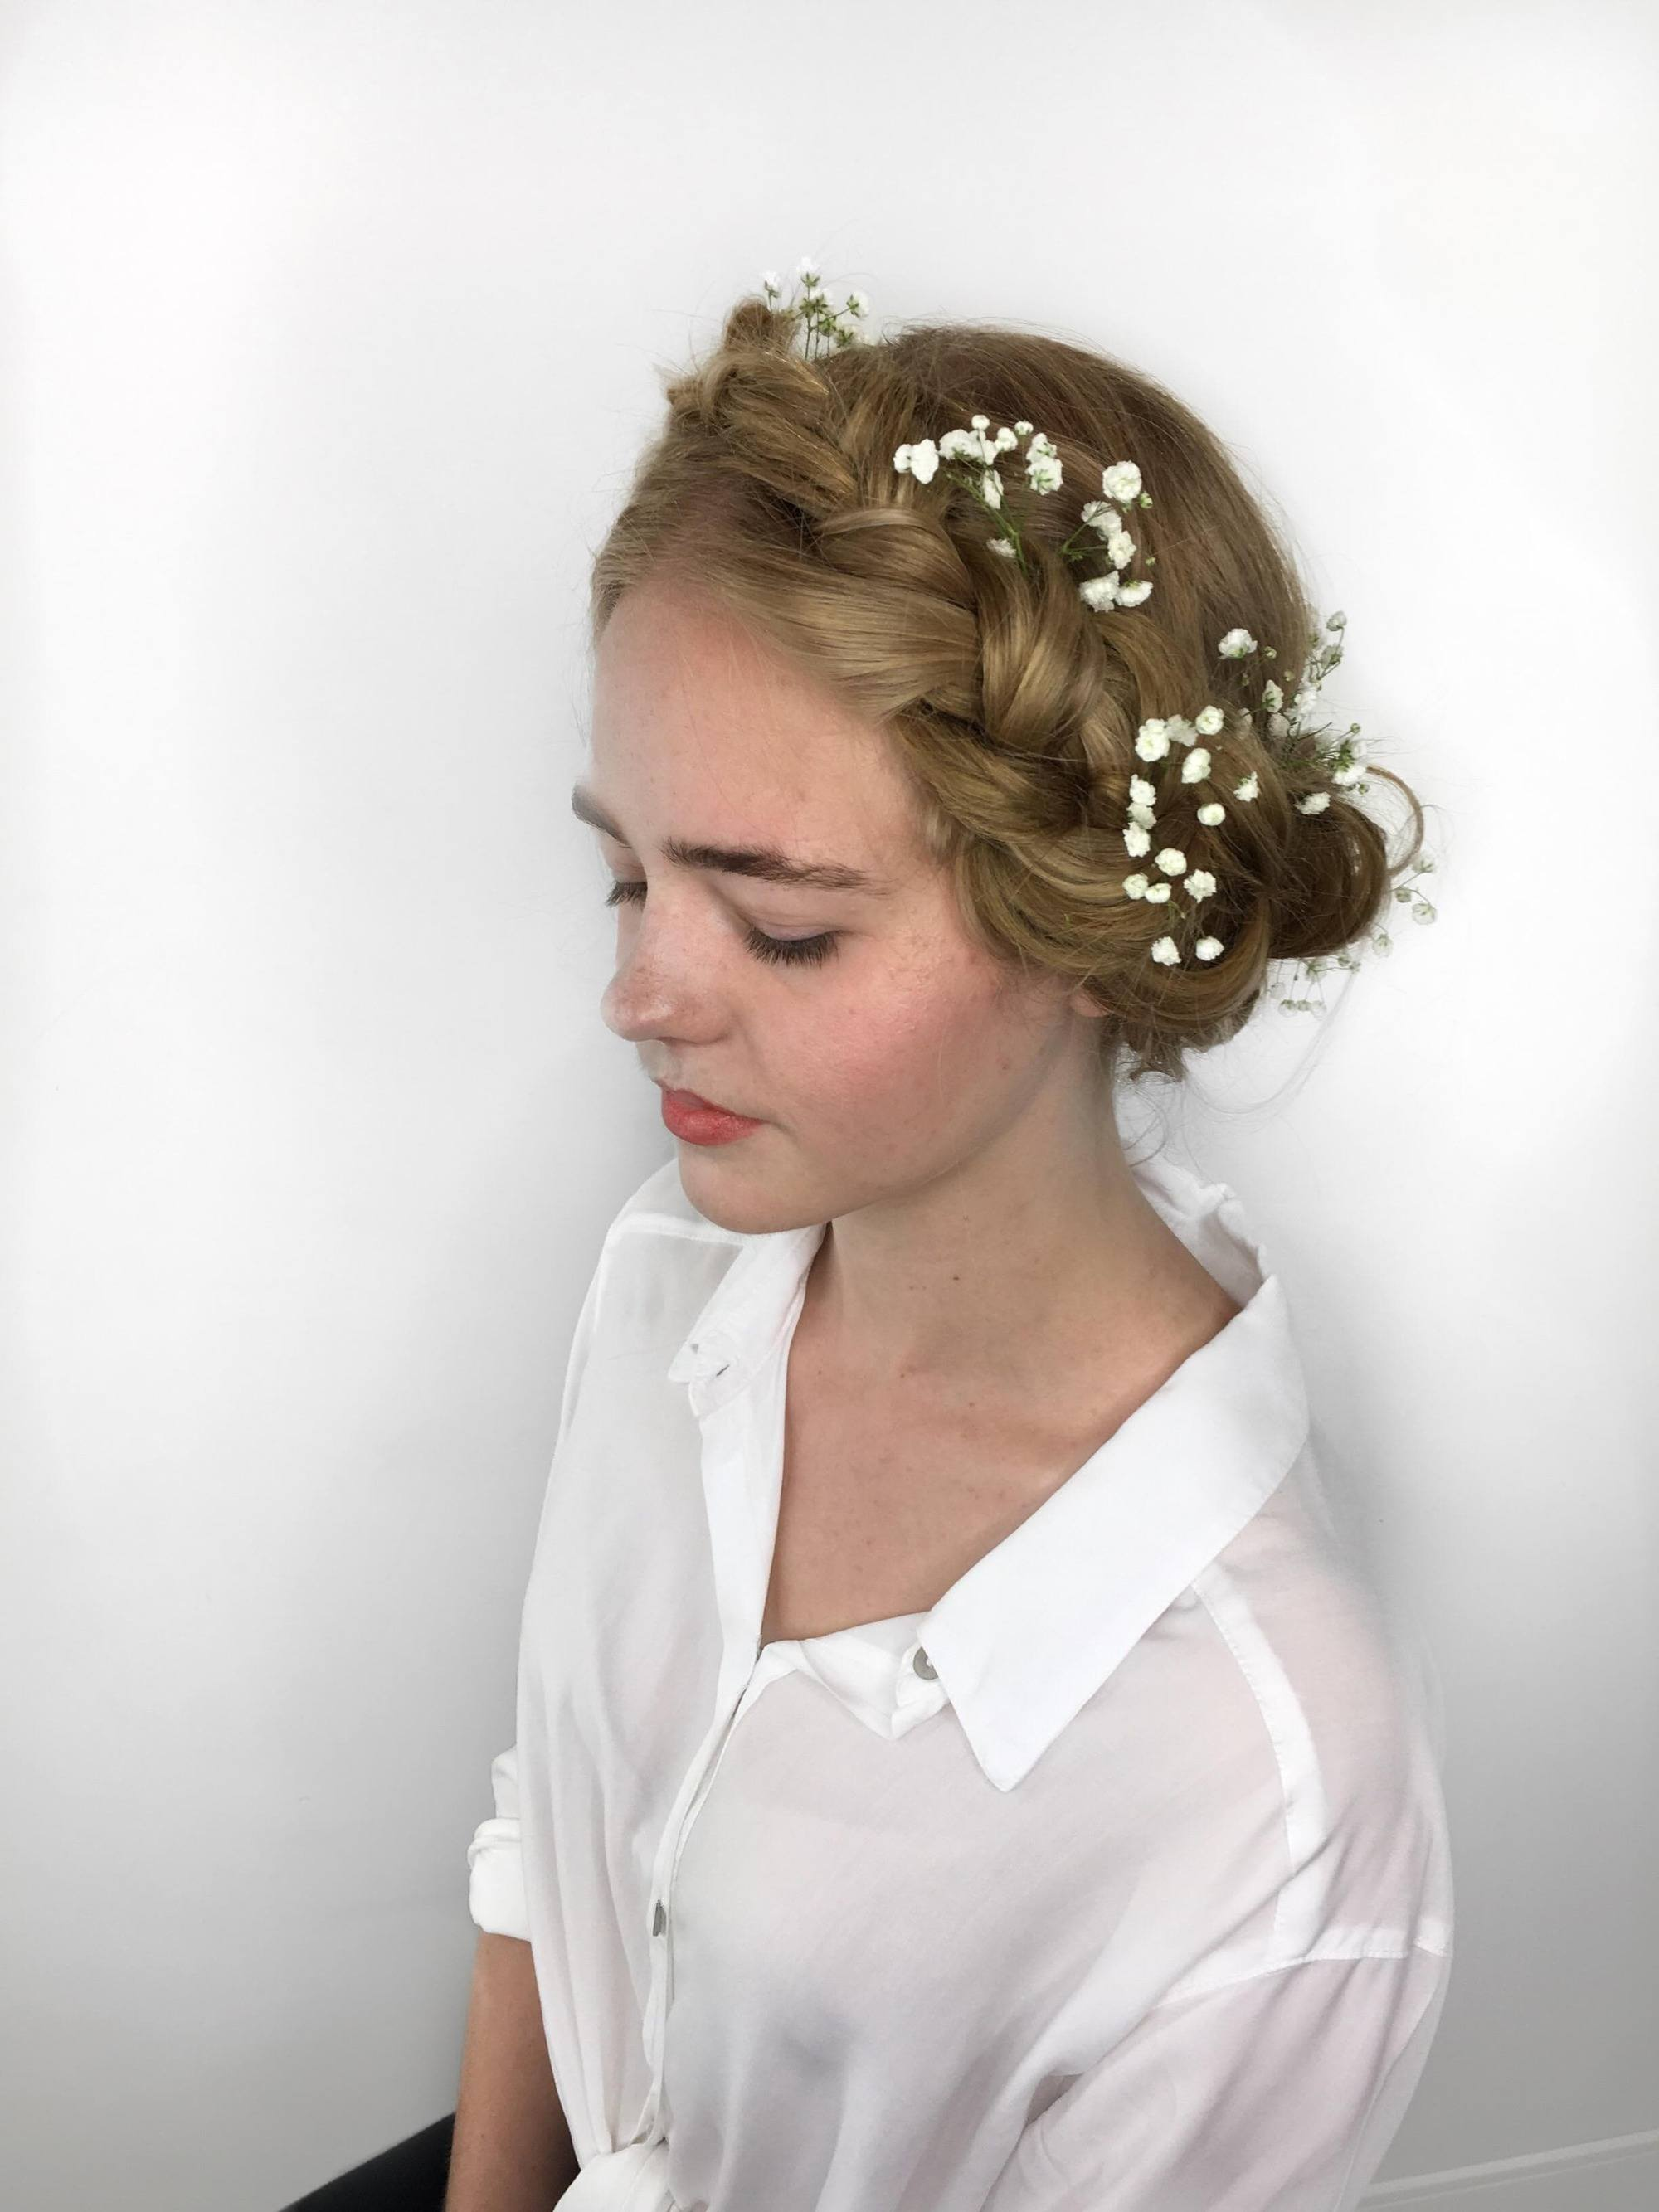 Wedding Braids and Wedding Hair Trends to Inspire Your Hairstyle